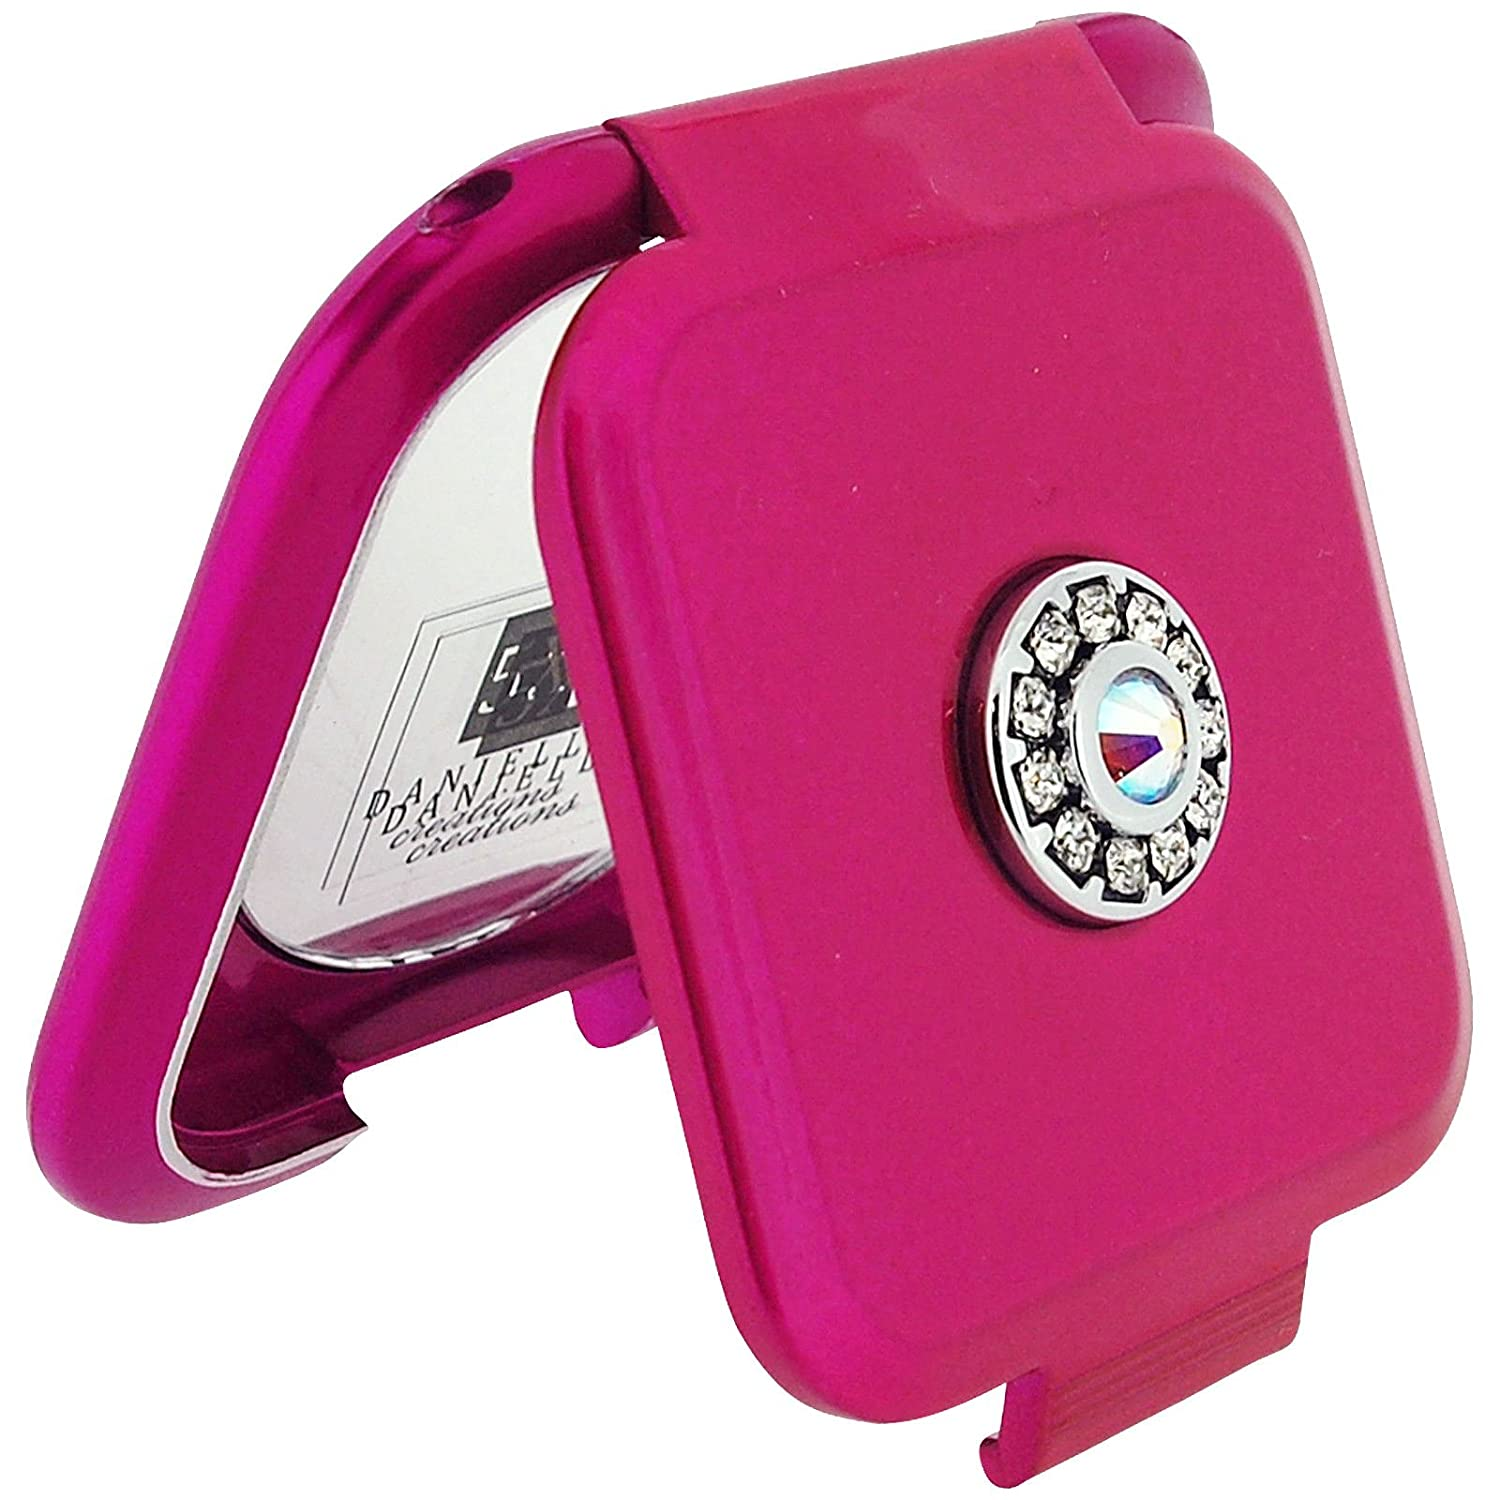 Danielle Compact Mirror Square Hot Pink Mirror Made With Swarovski Crystals 5x Magnification & True Image SC1033